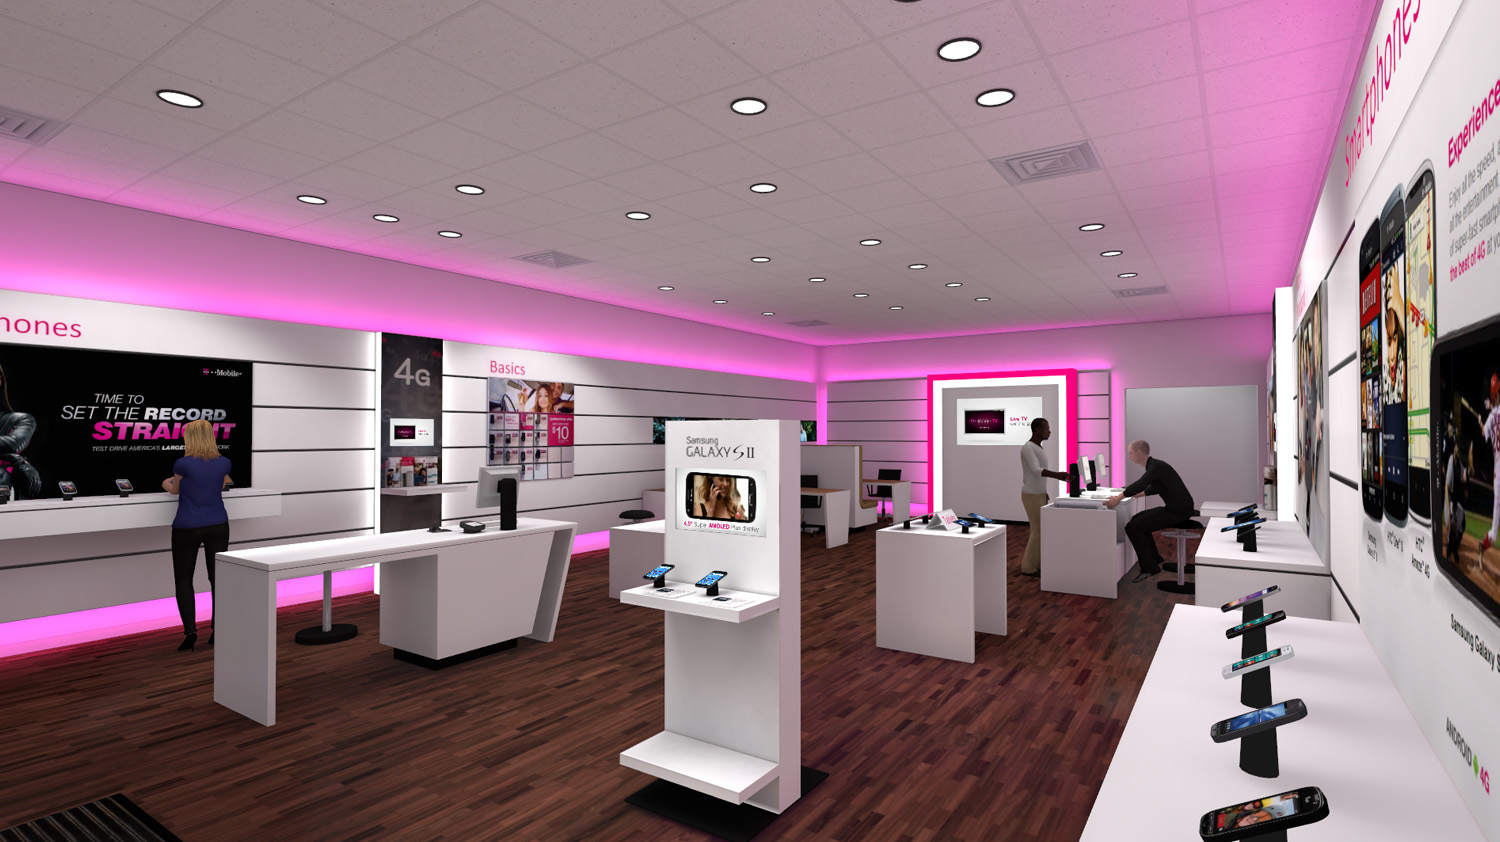 T-Mobile in Brooklyn, New York: complete list of store locations and store hours in all states. Find the closest store near you.